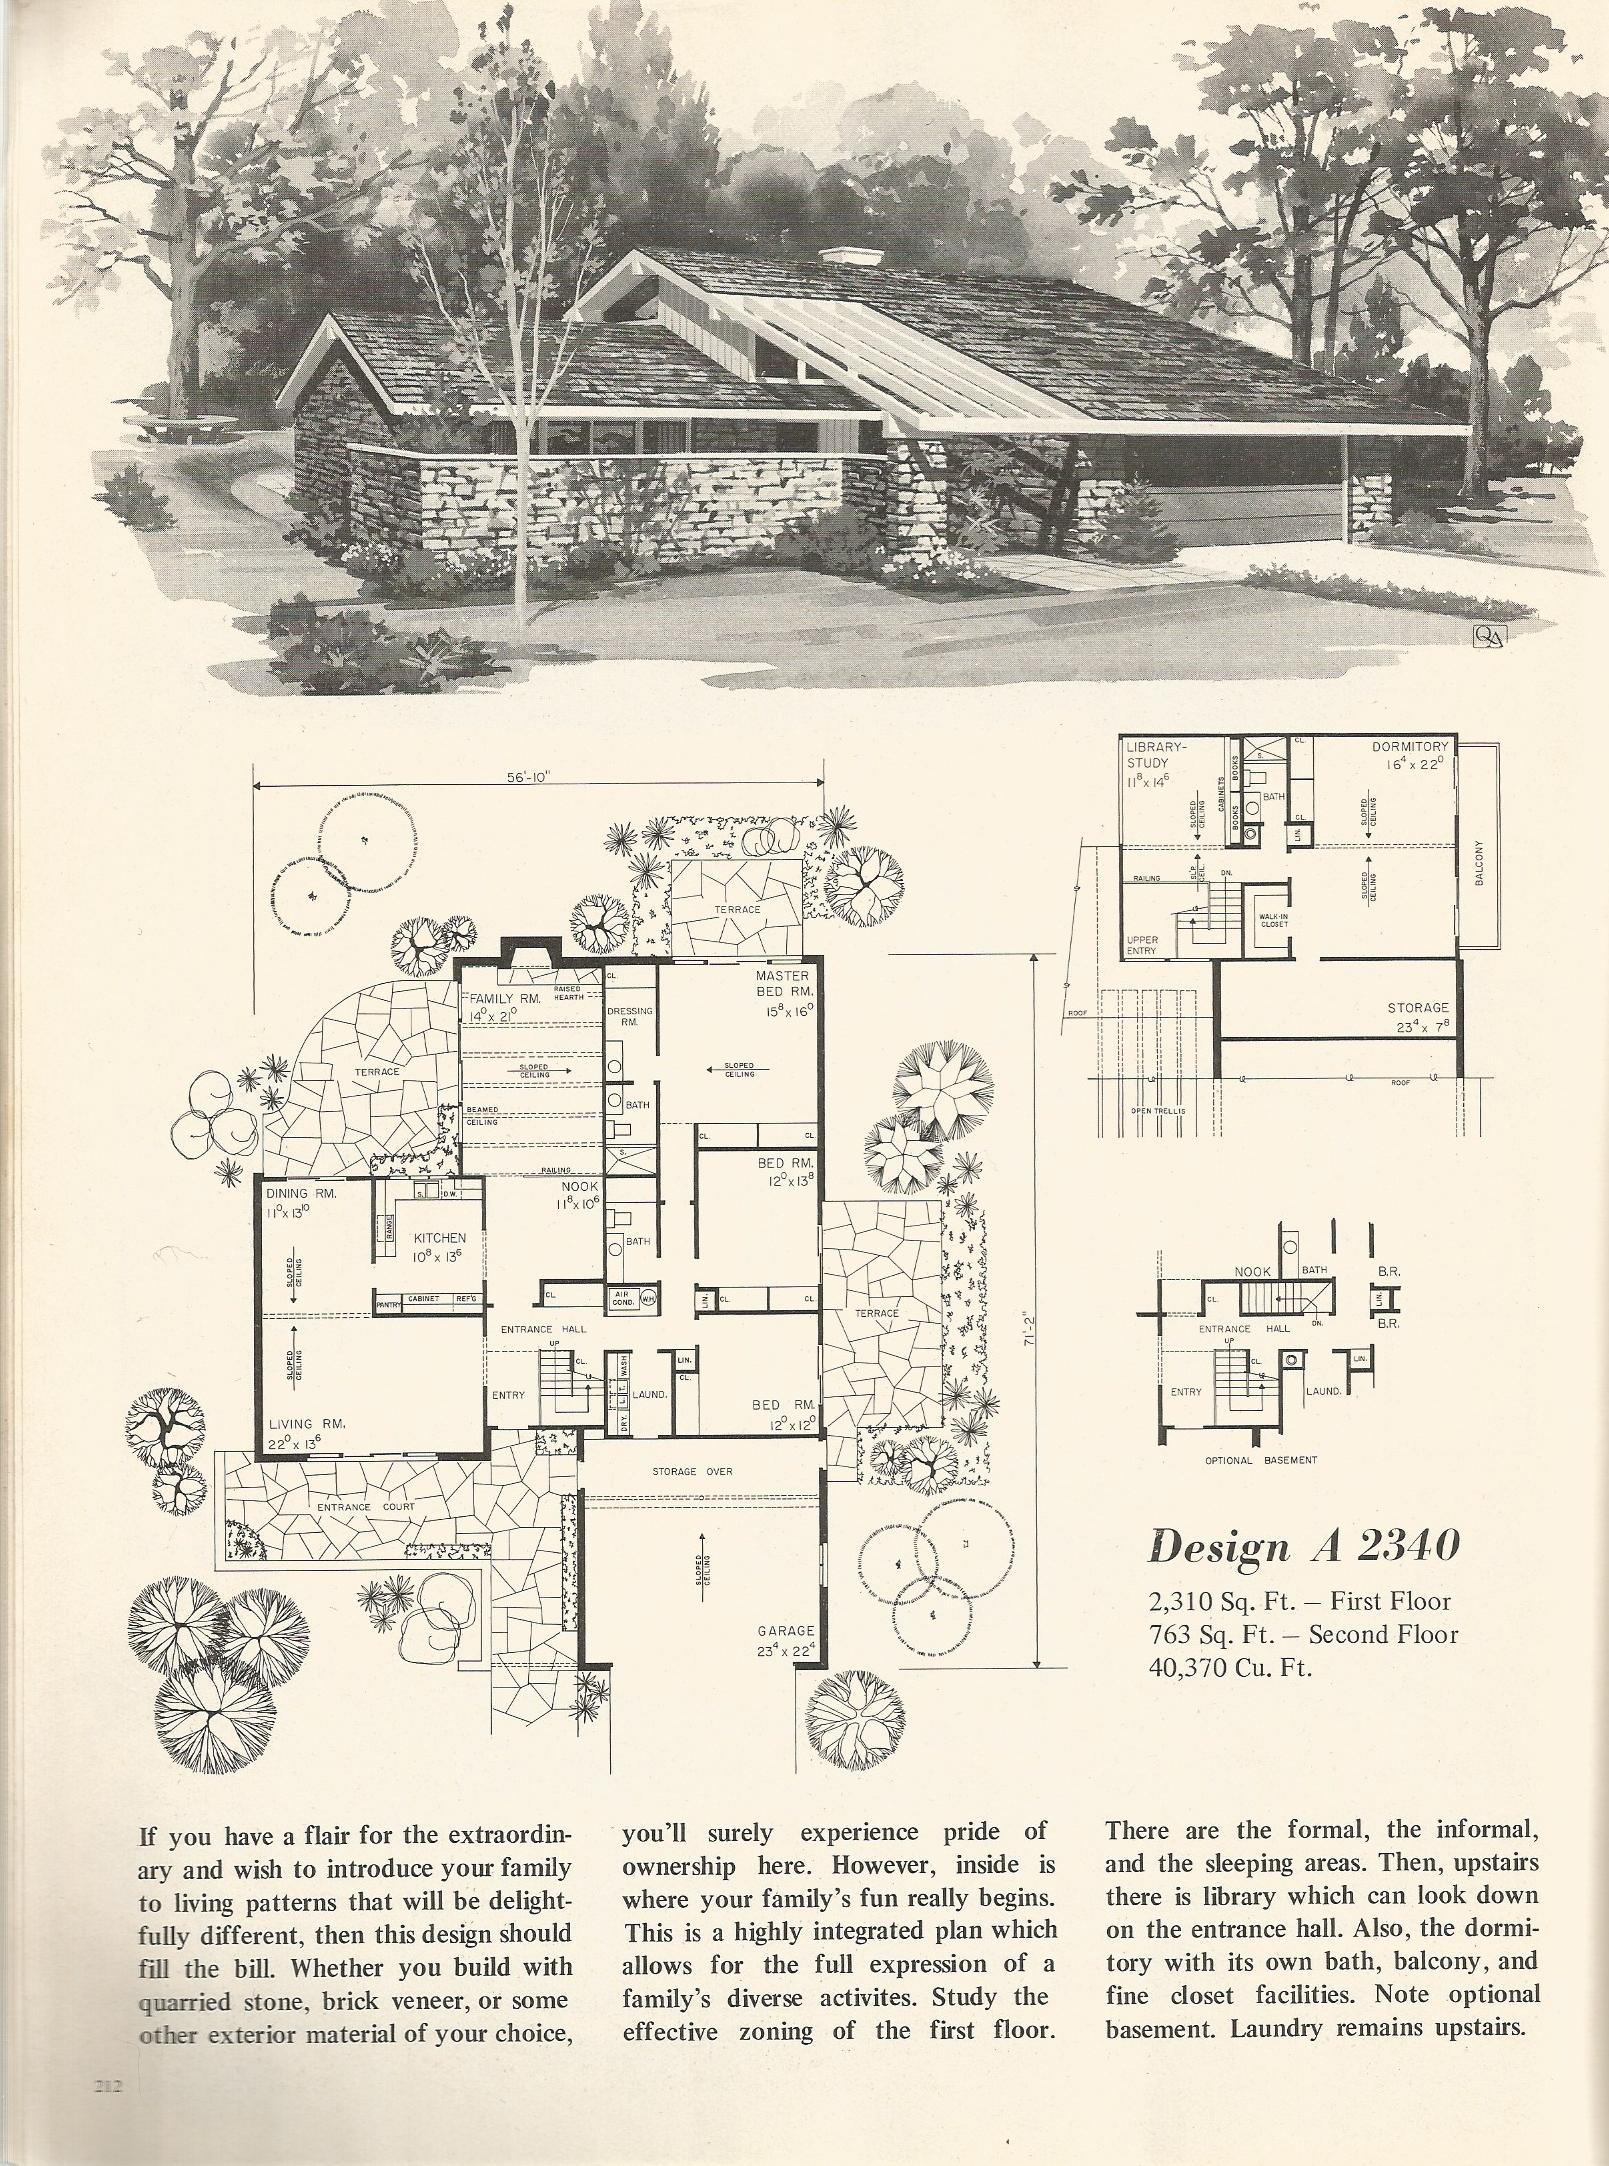 Vintage house plans 2340 antique alter ego for Vintage home plans